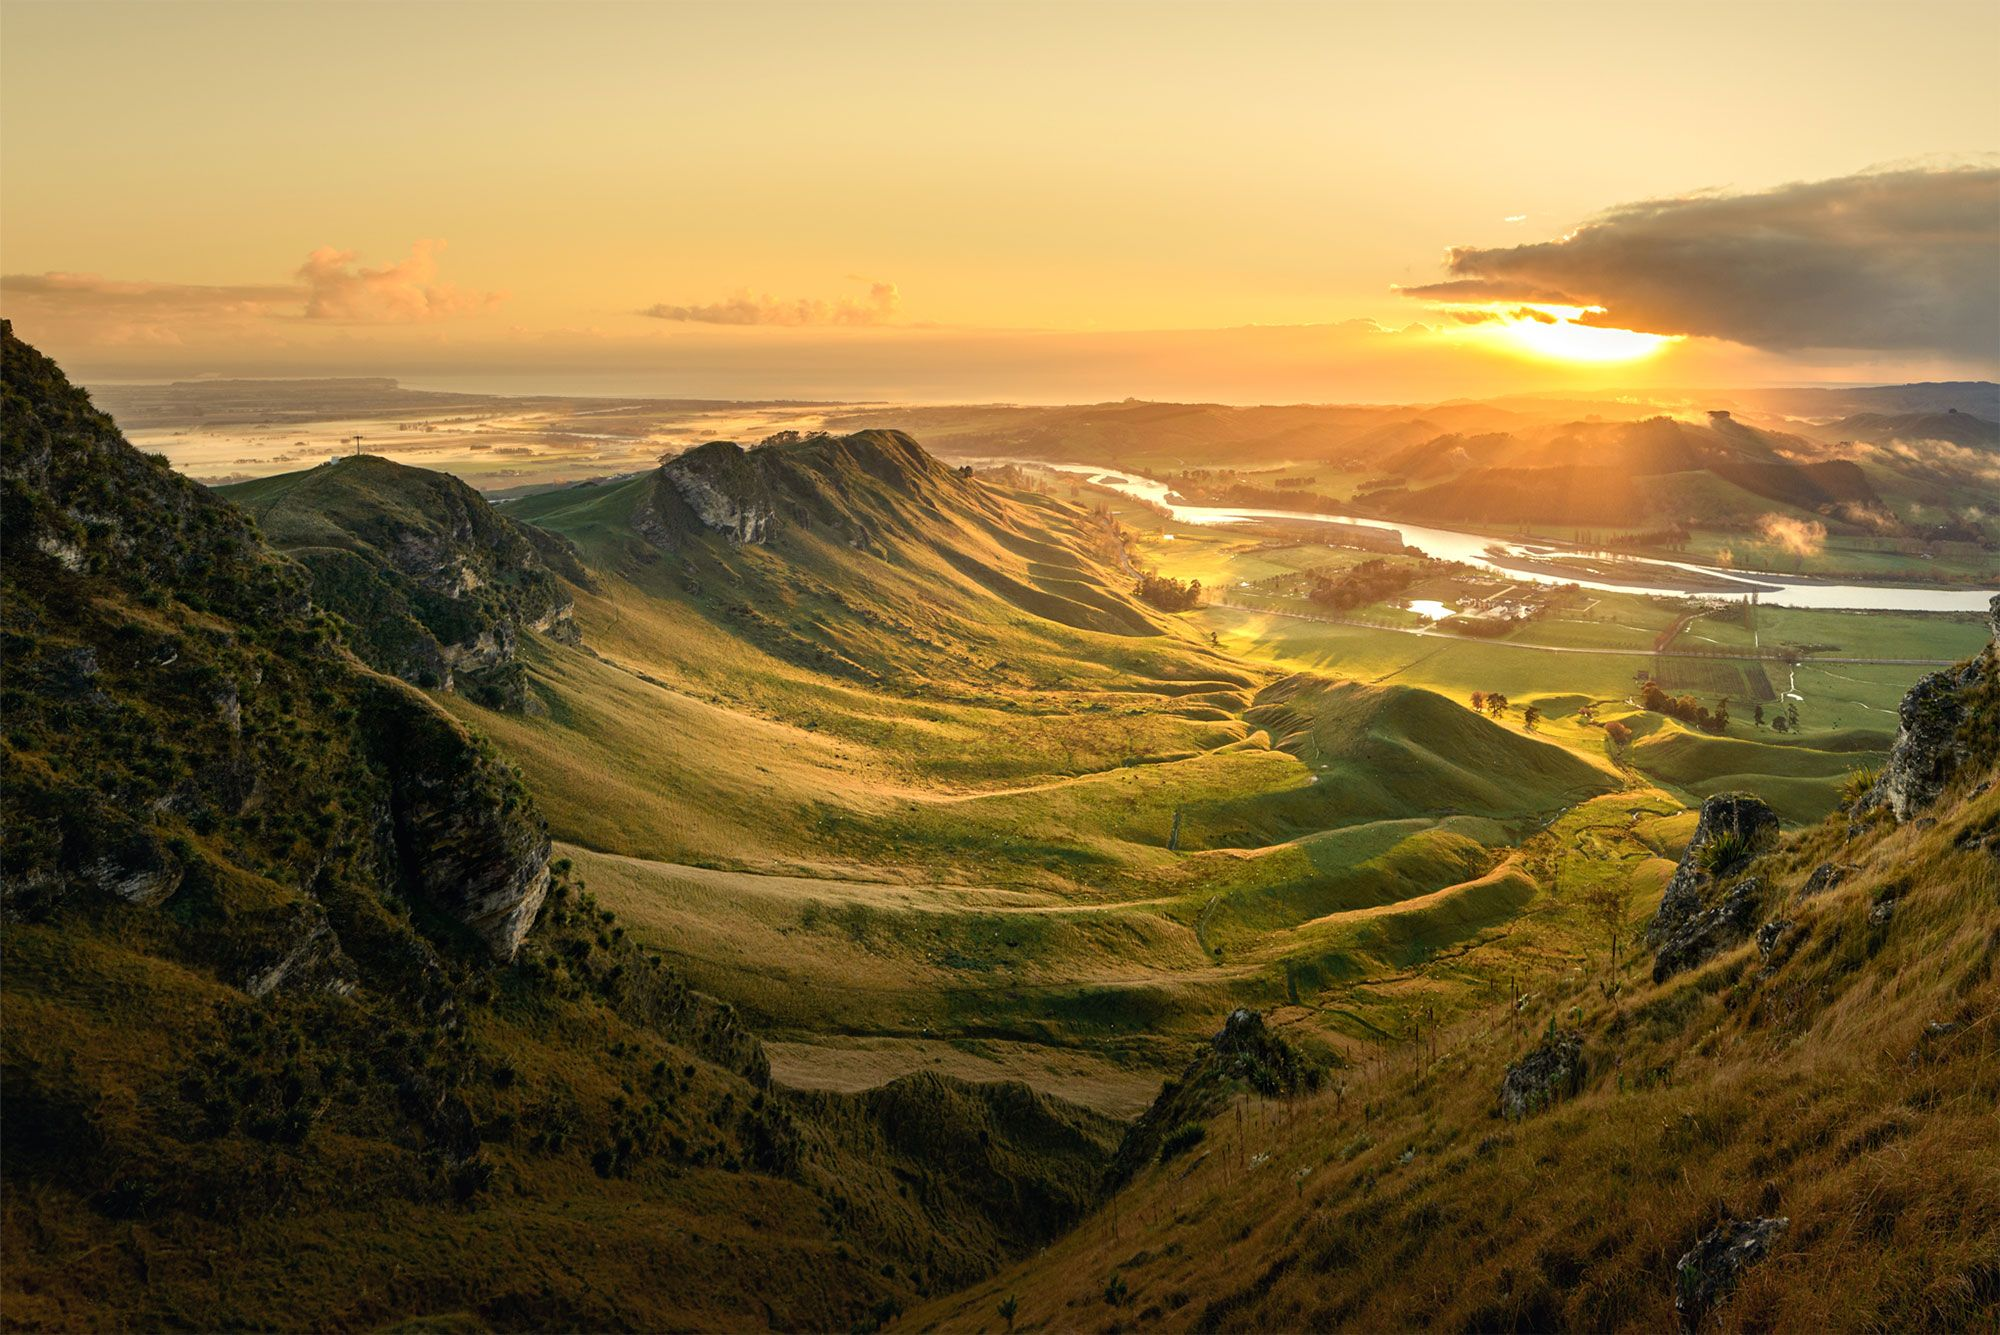 A climb to the top of Te Mata Peak in the Hawkes Bay yields staggering views